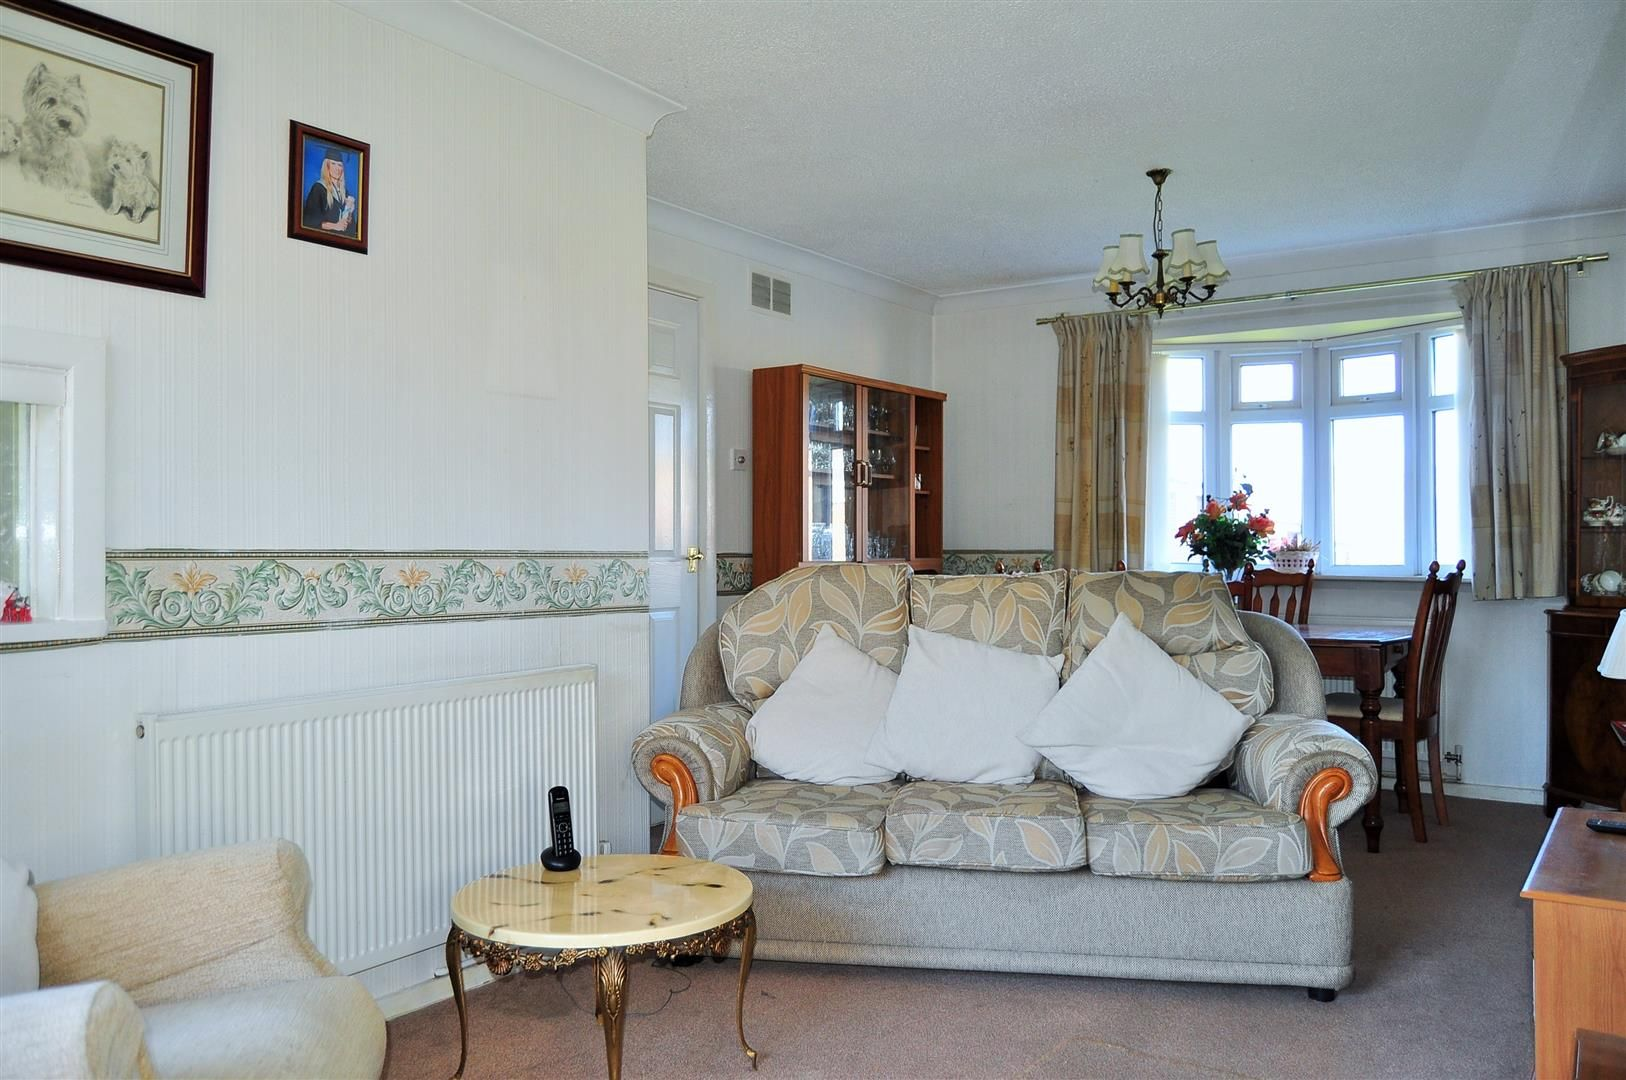 3 bed end-of-terrace for sale 3